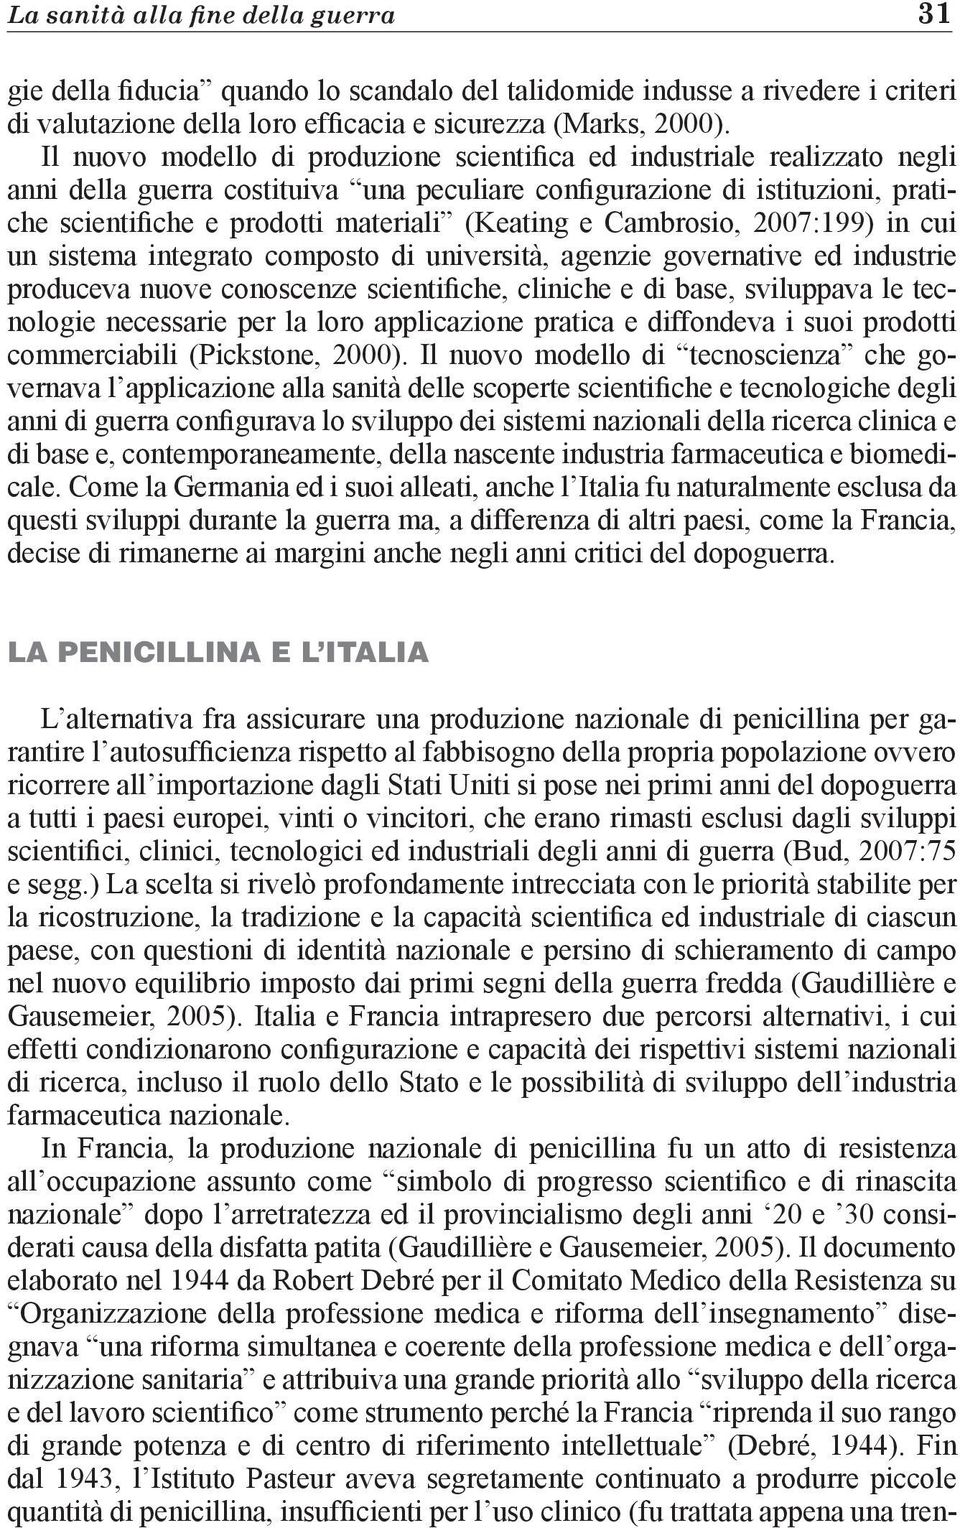 (Keating e Cambrosio, 2007:199) in cui un sistema integrato composto di università, agenzie governative ed industrie produceva nuove conoscenze scientifiche, cliniche e di base, sviluppava le